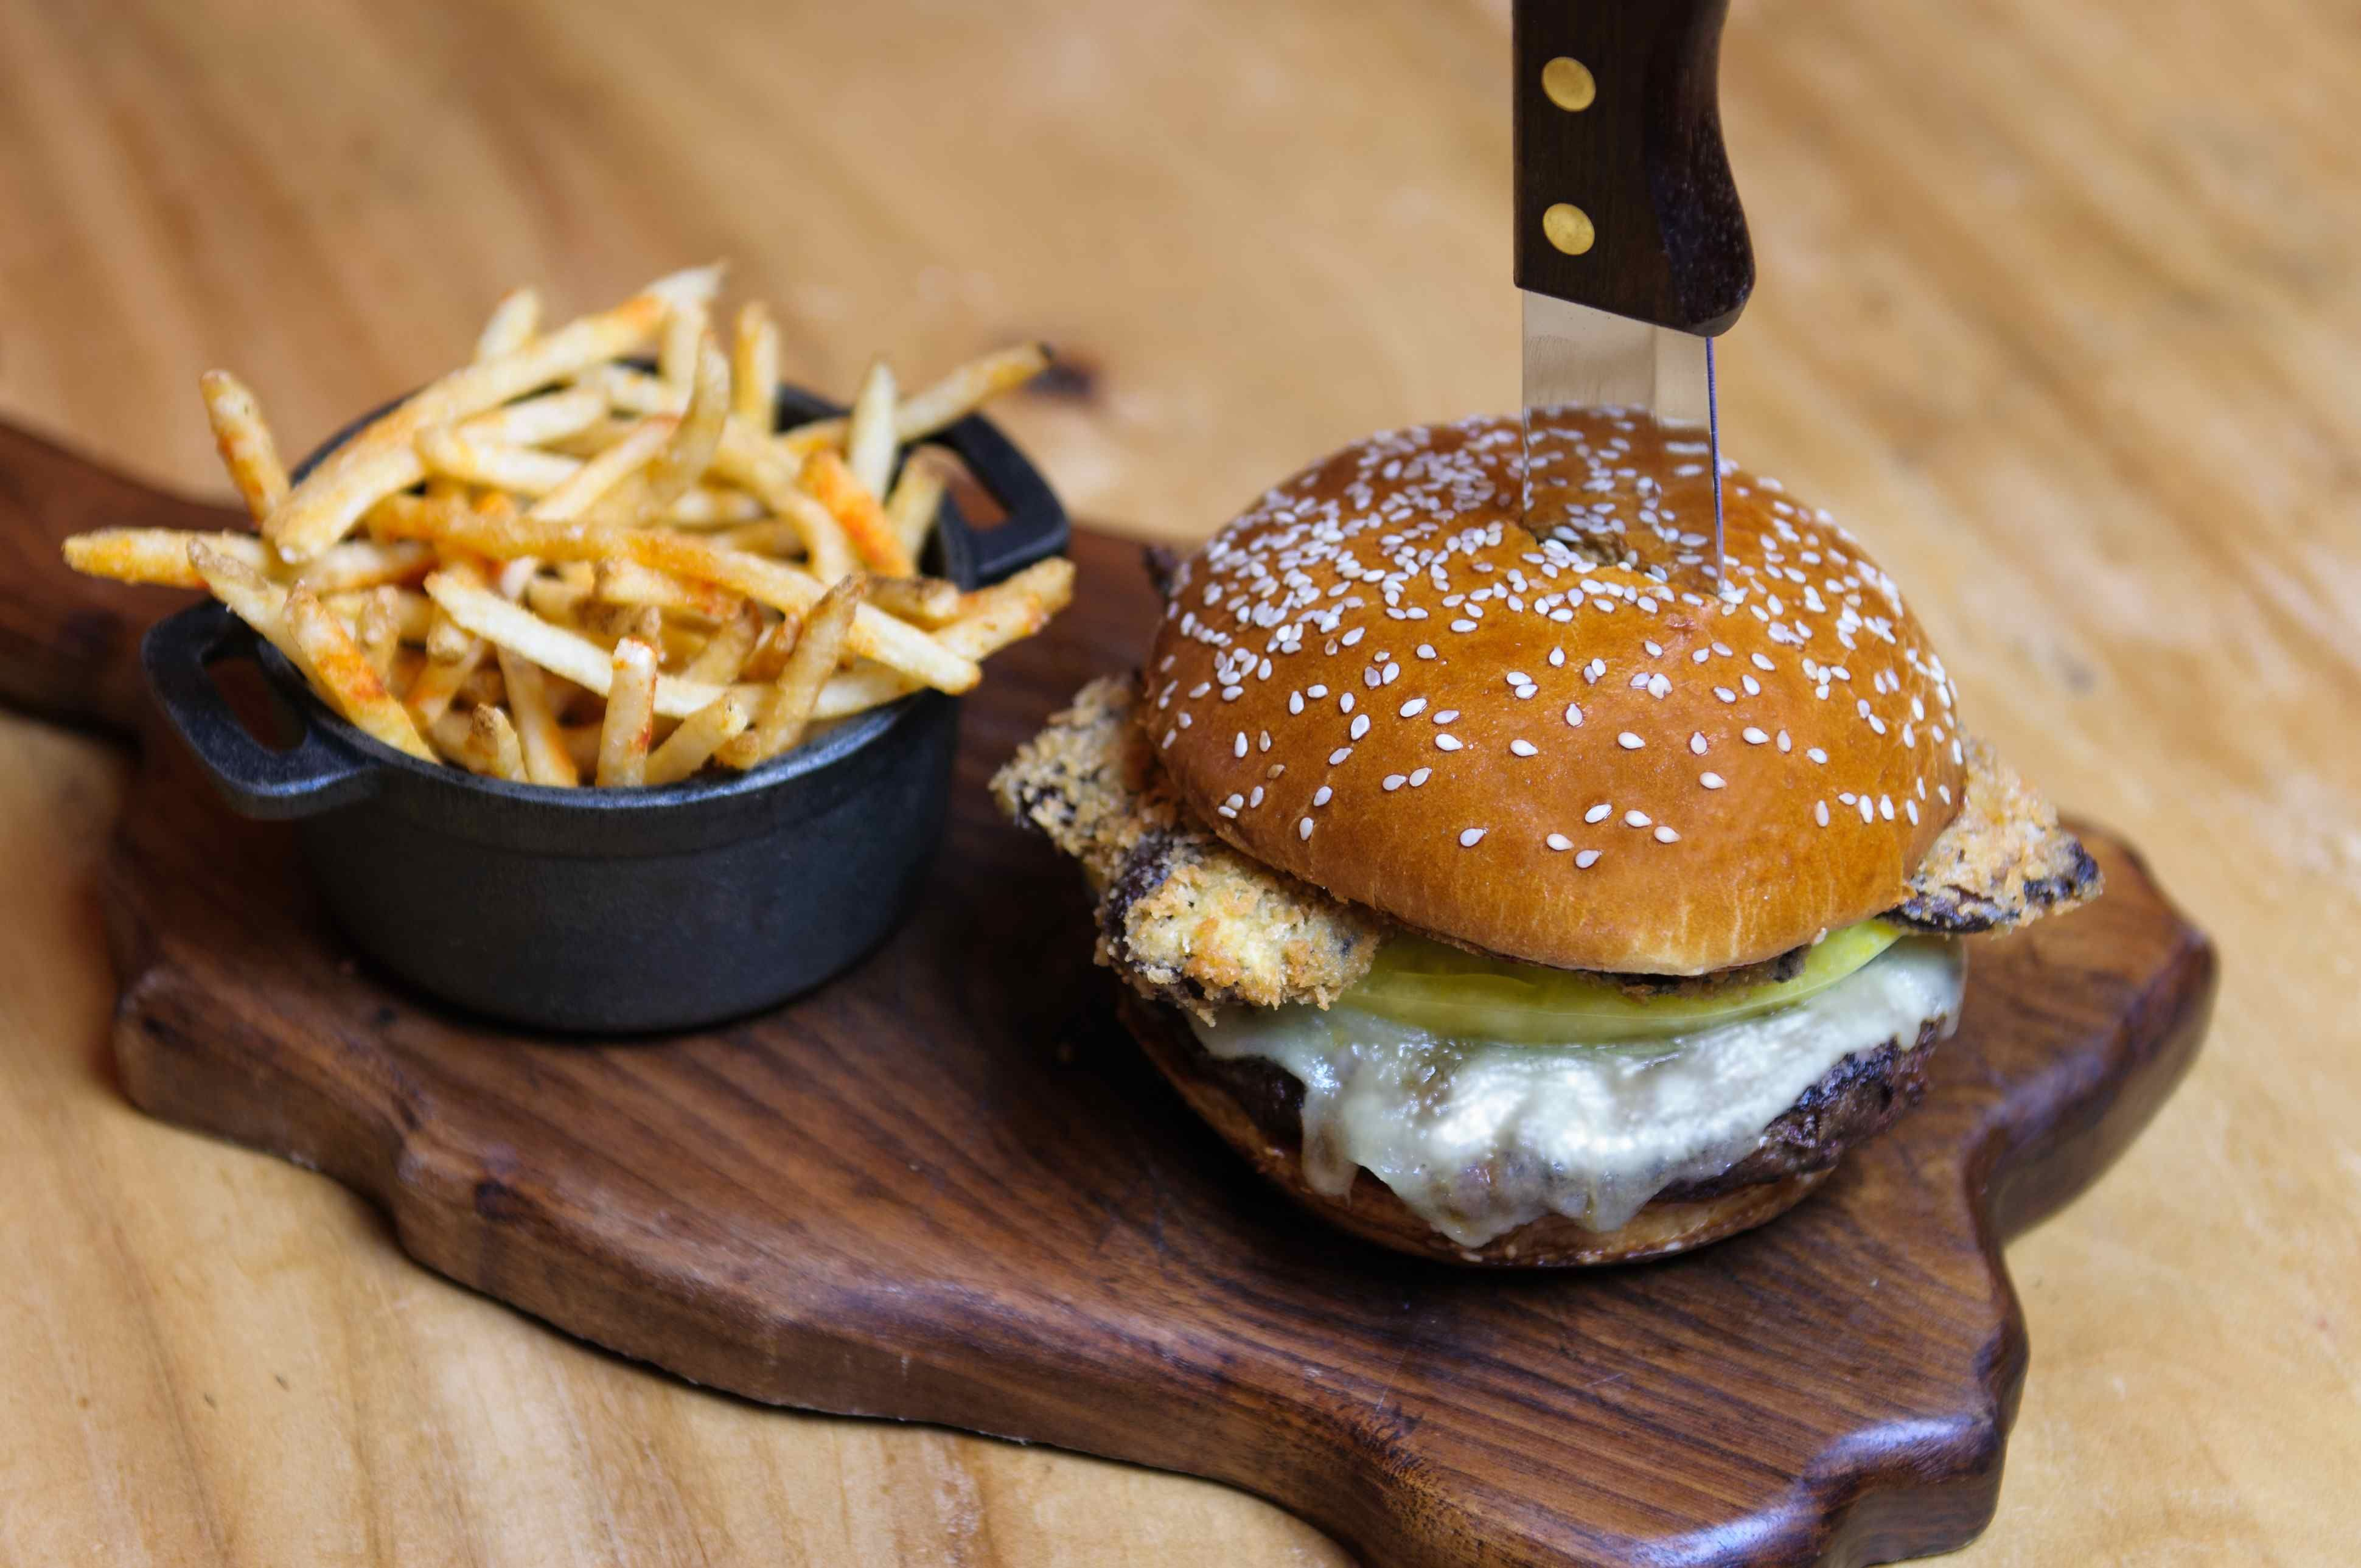 50 States in One Meal: Proof Canteen, in the Scottsdale Four Seasons Resort, lets you sample the whole country at once. Drinks are sourced from all 50 states and the menu features regional specialties such as fried green tomatoes and Maine lobster rolls.